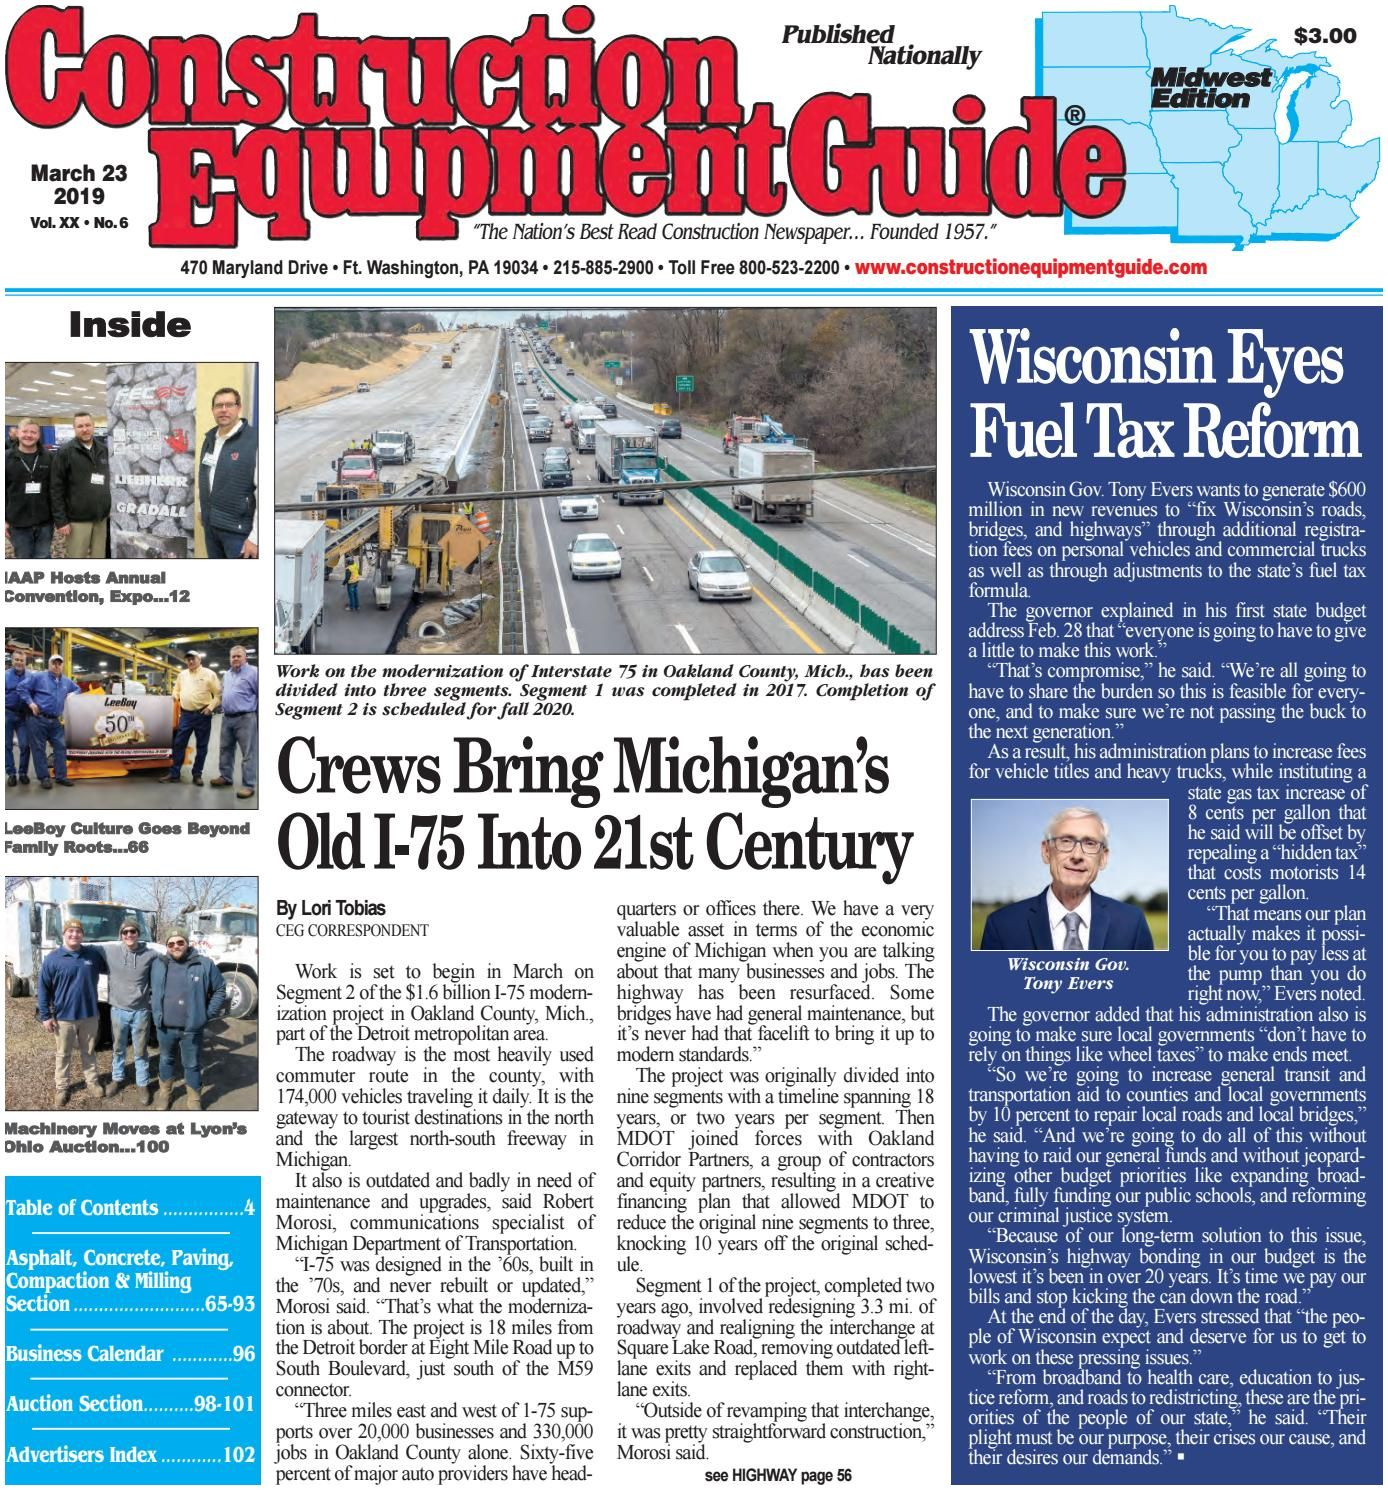 Midwest 6 March 23 2019